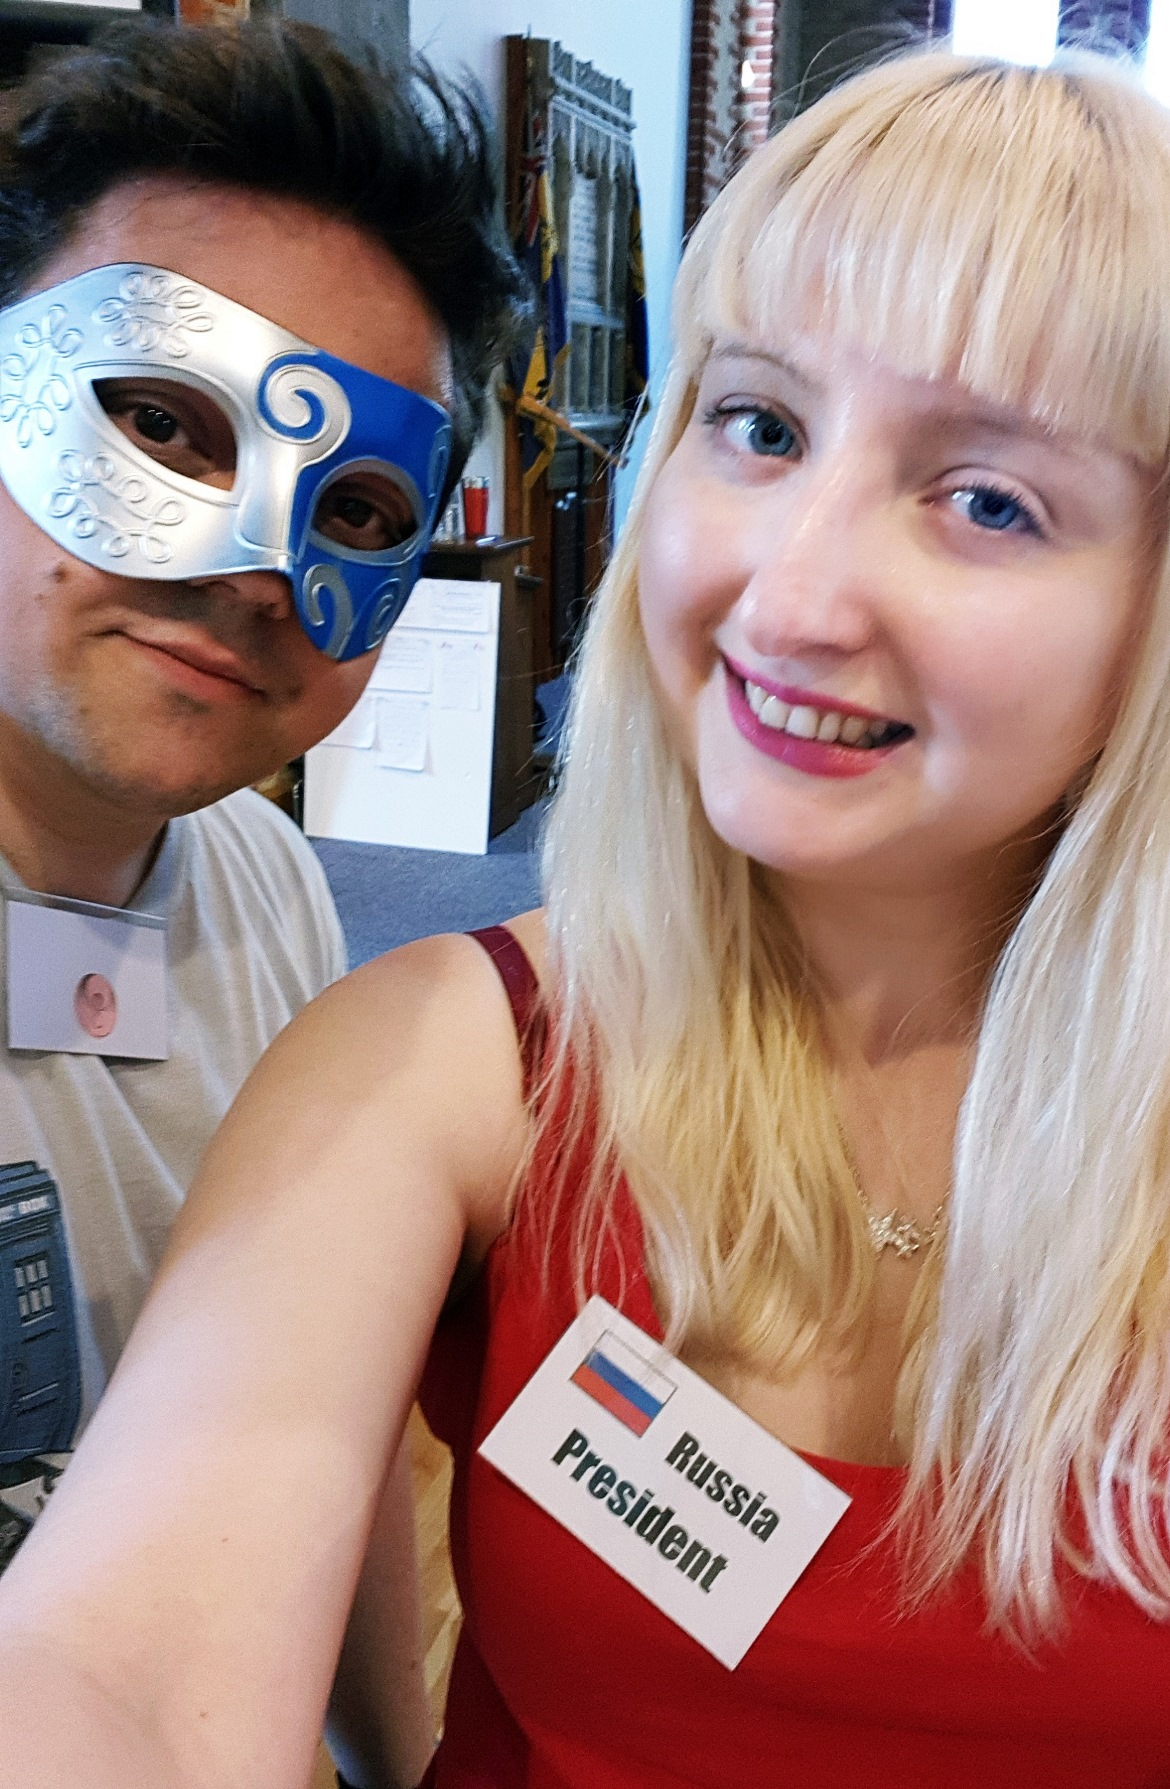 Alien selfie - Arrival Megagame After Action Report by BeckyBecky Blogs